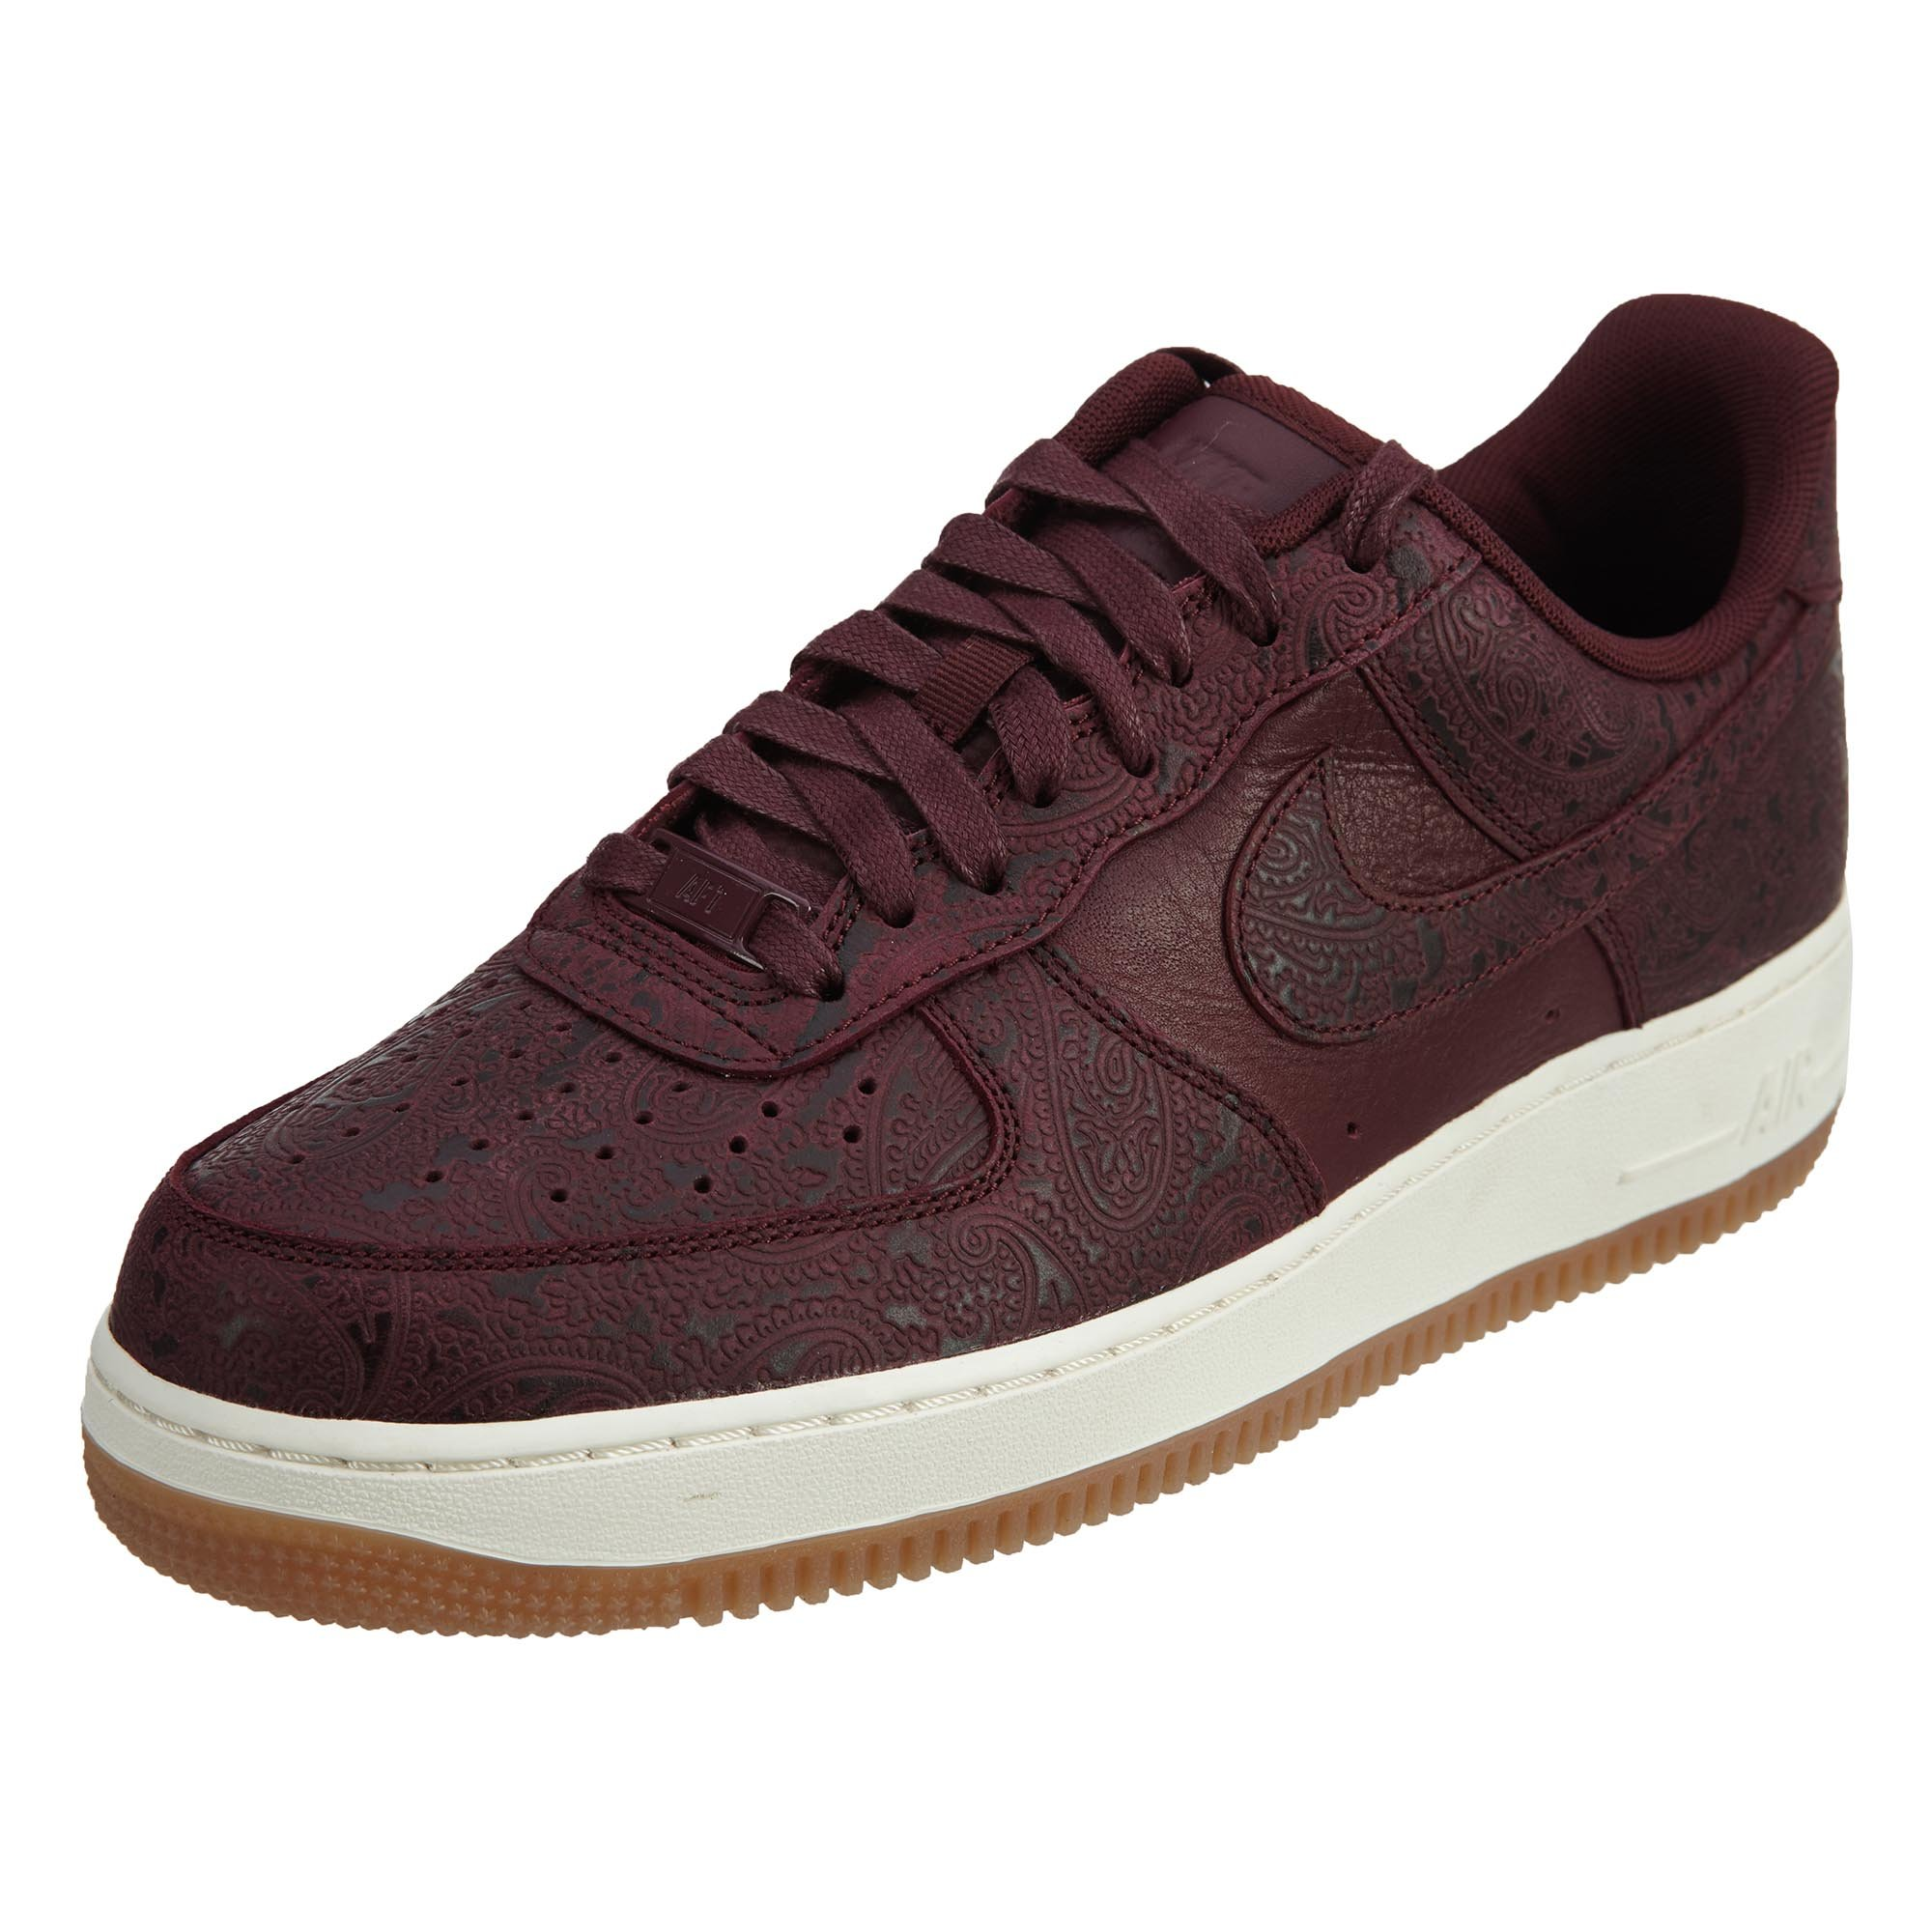 Nike Air Force 1 07 Prm Ess Womens Style: 860532-600 Size: 11.5